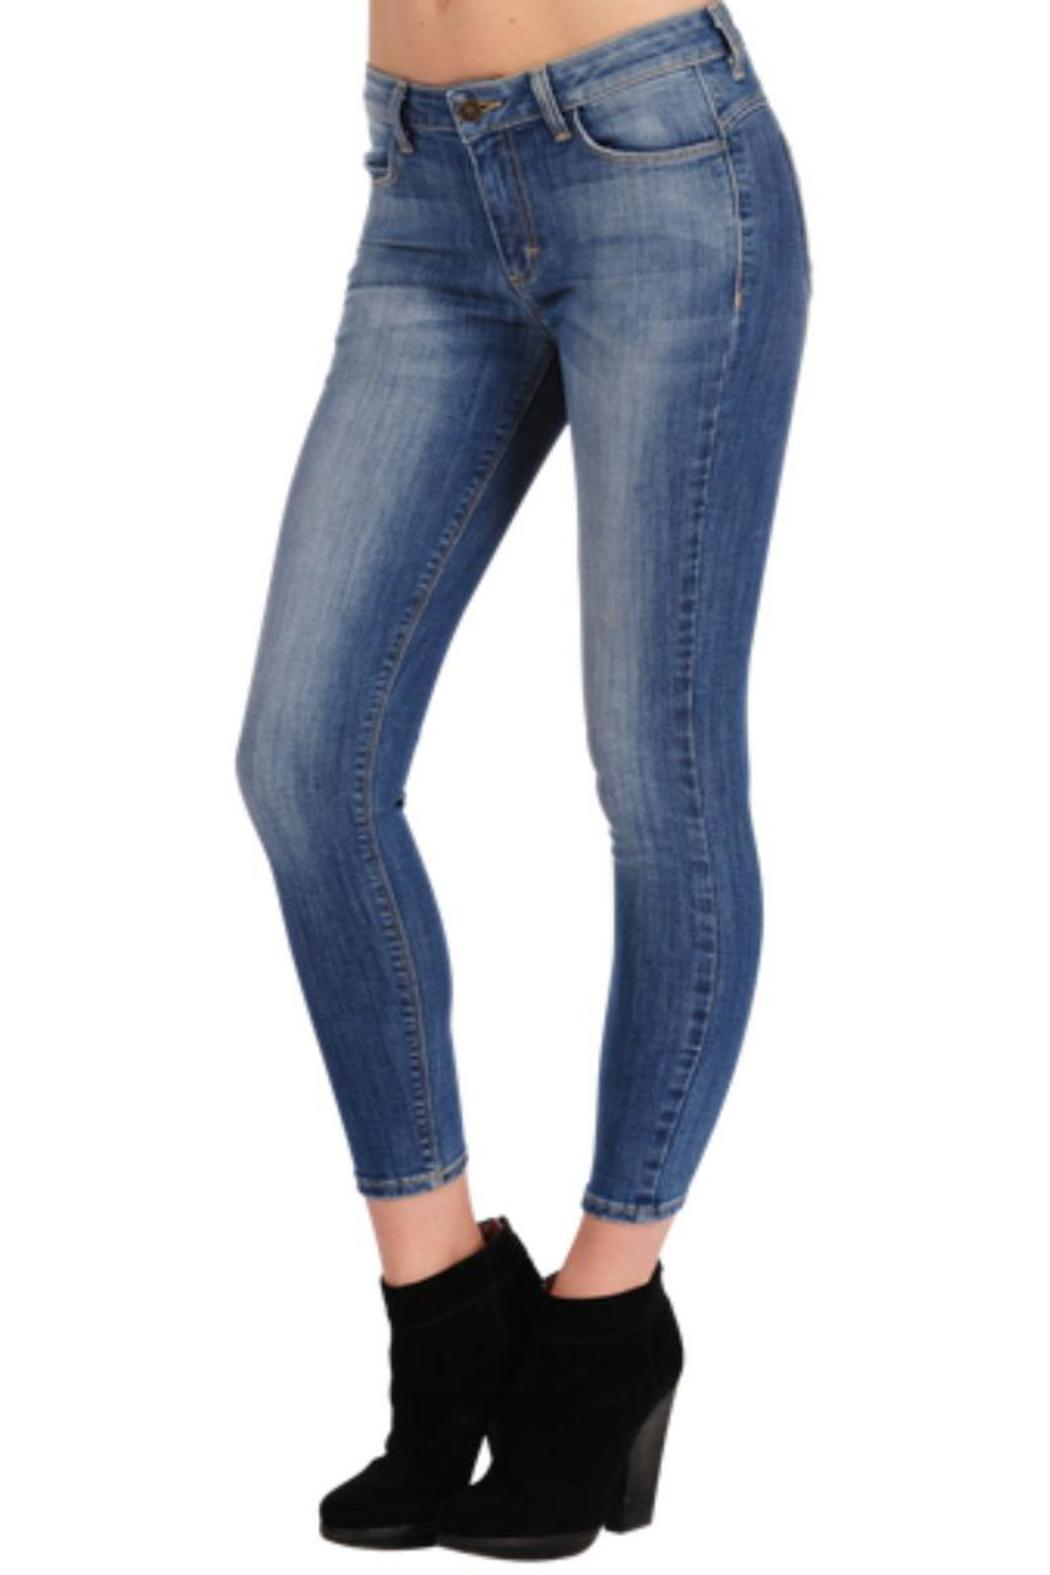 Siwy Ladonna First Date Jeans from Houston by Wardrobe ...